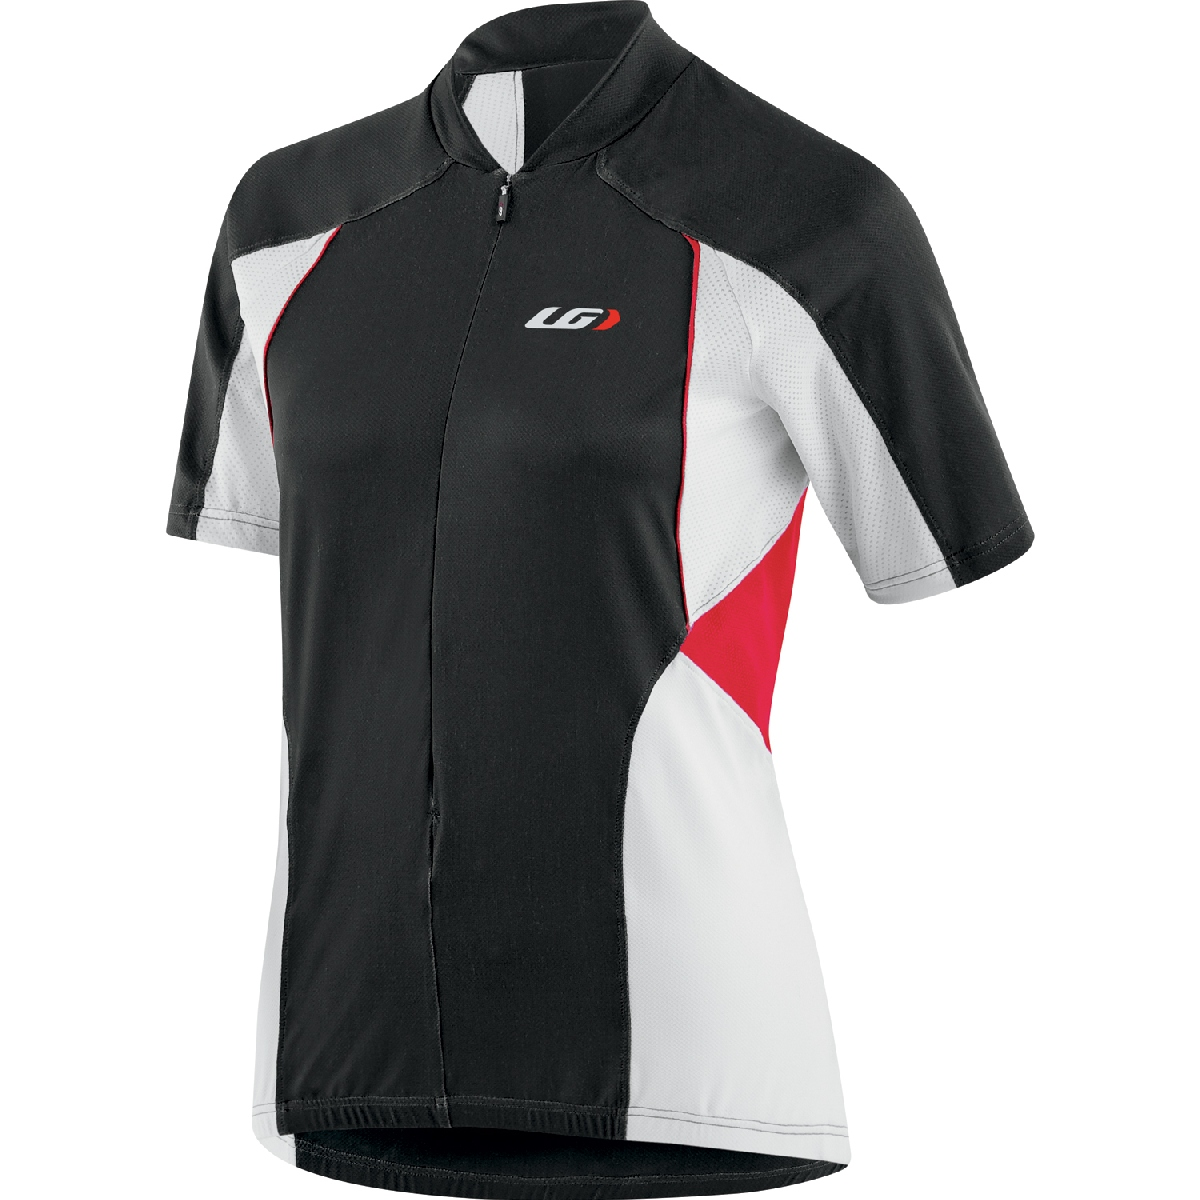 Louis Garneau Beeze Vent Short Sleeve Cycling Jersey Women's Size M Black Red White U.S.A. & Canada